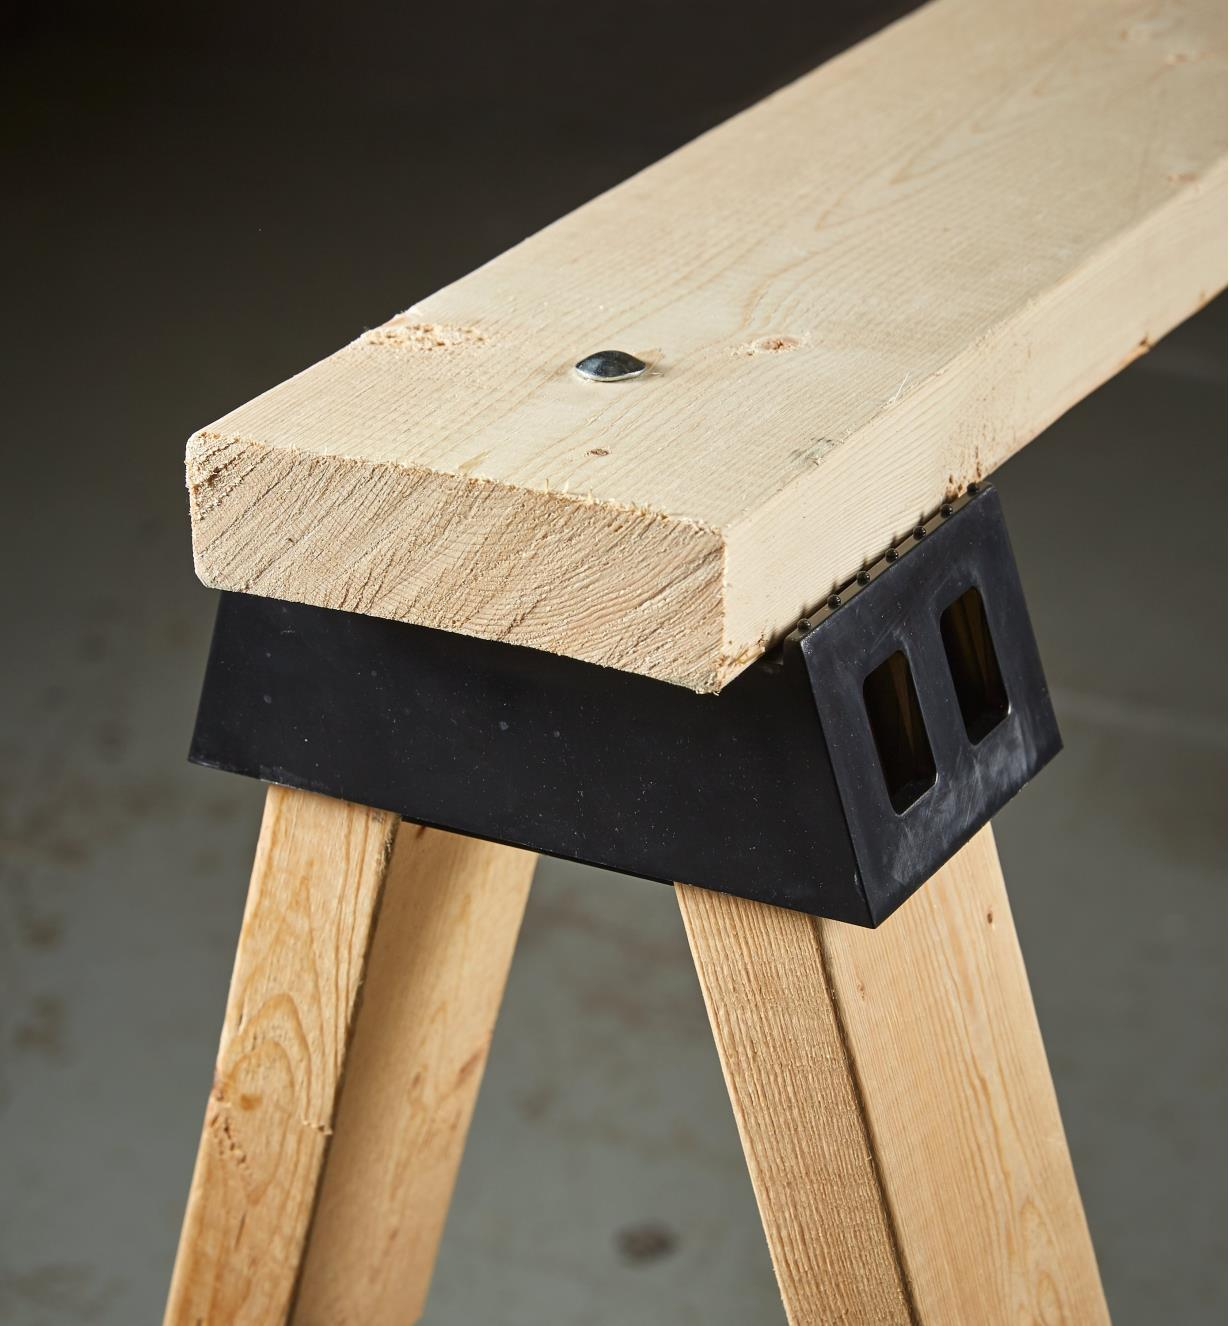 One end of a sawhorse made with a sawhorse bracket